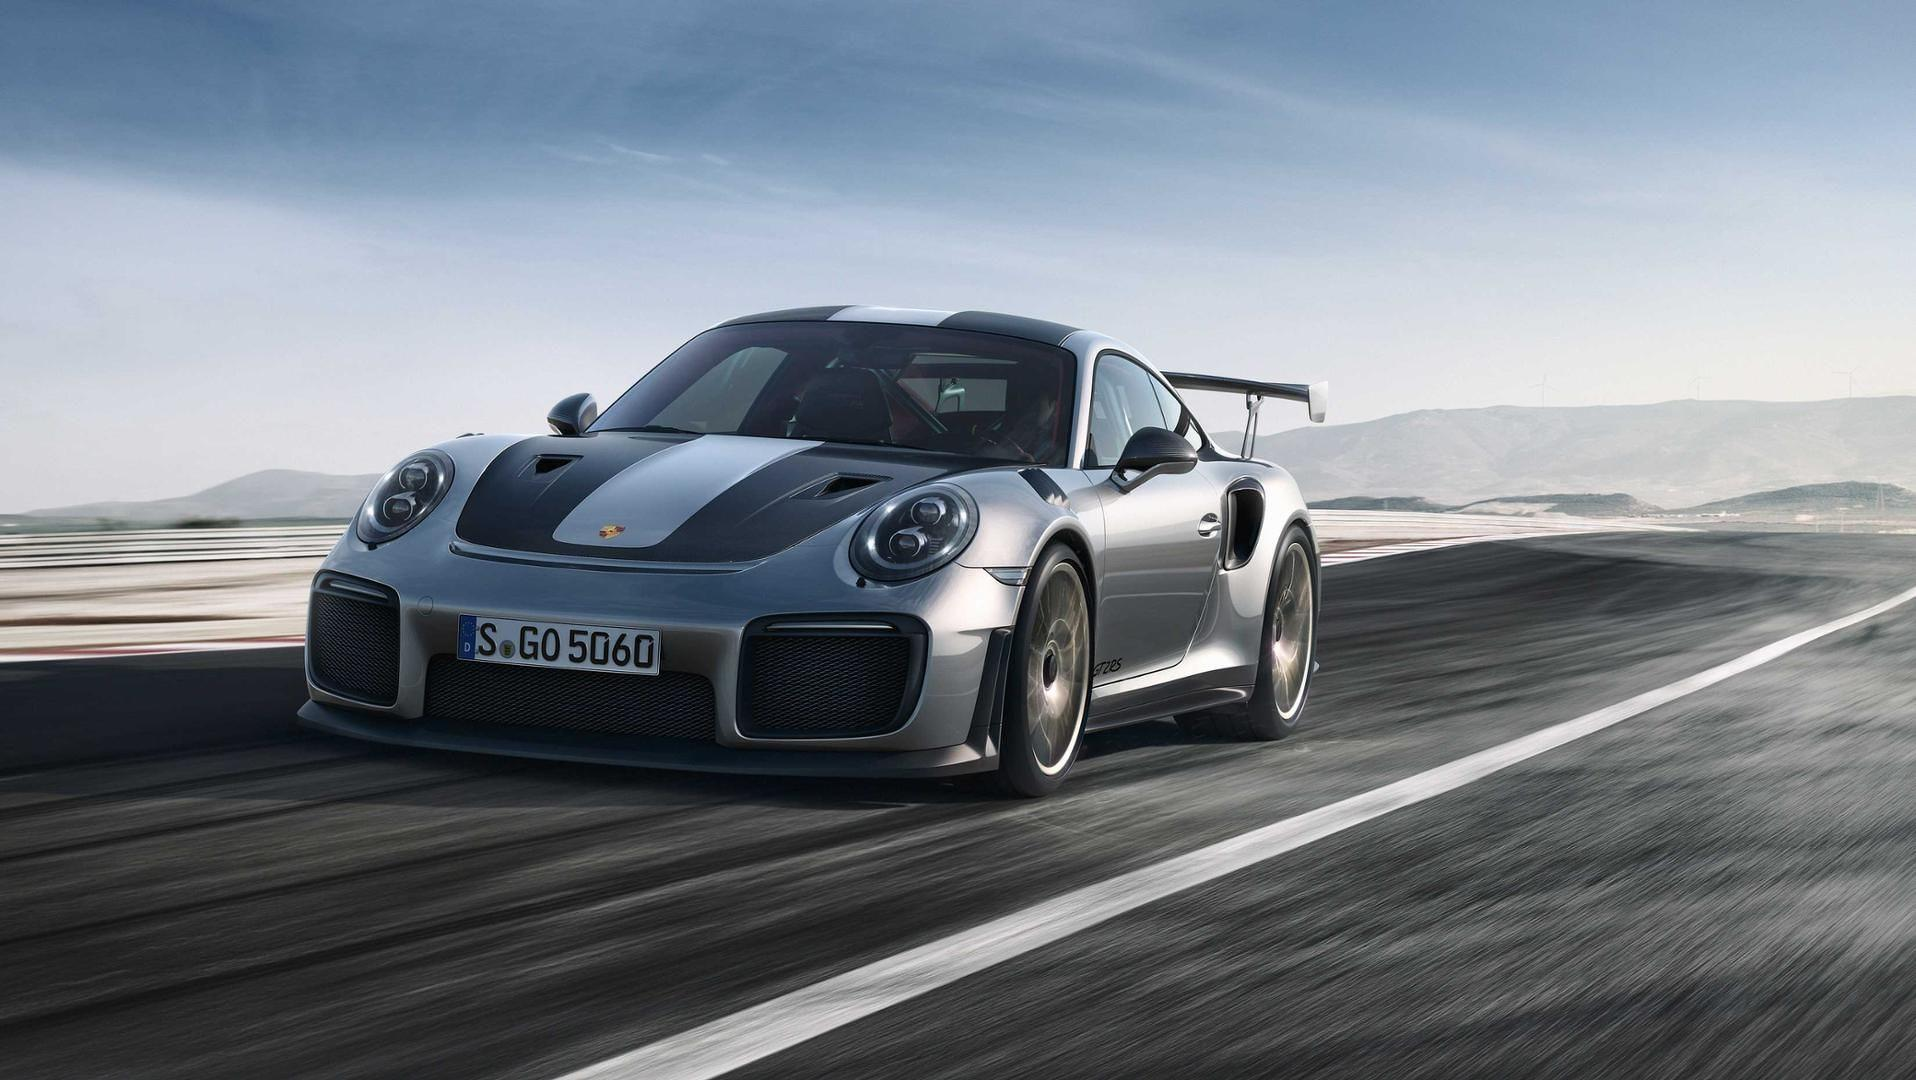 porsche-911-gt2-rs-leaked-official-image